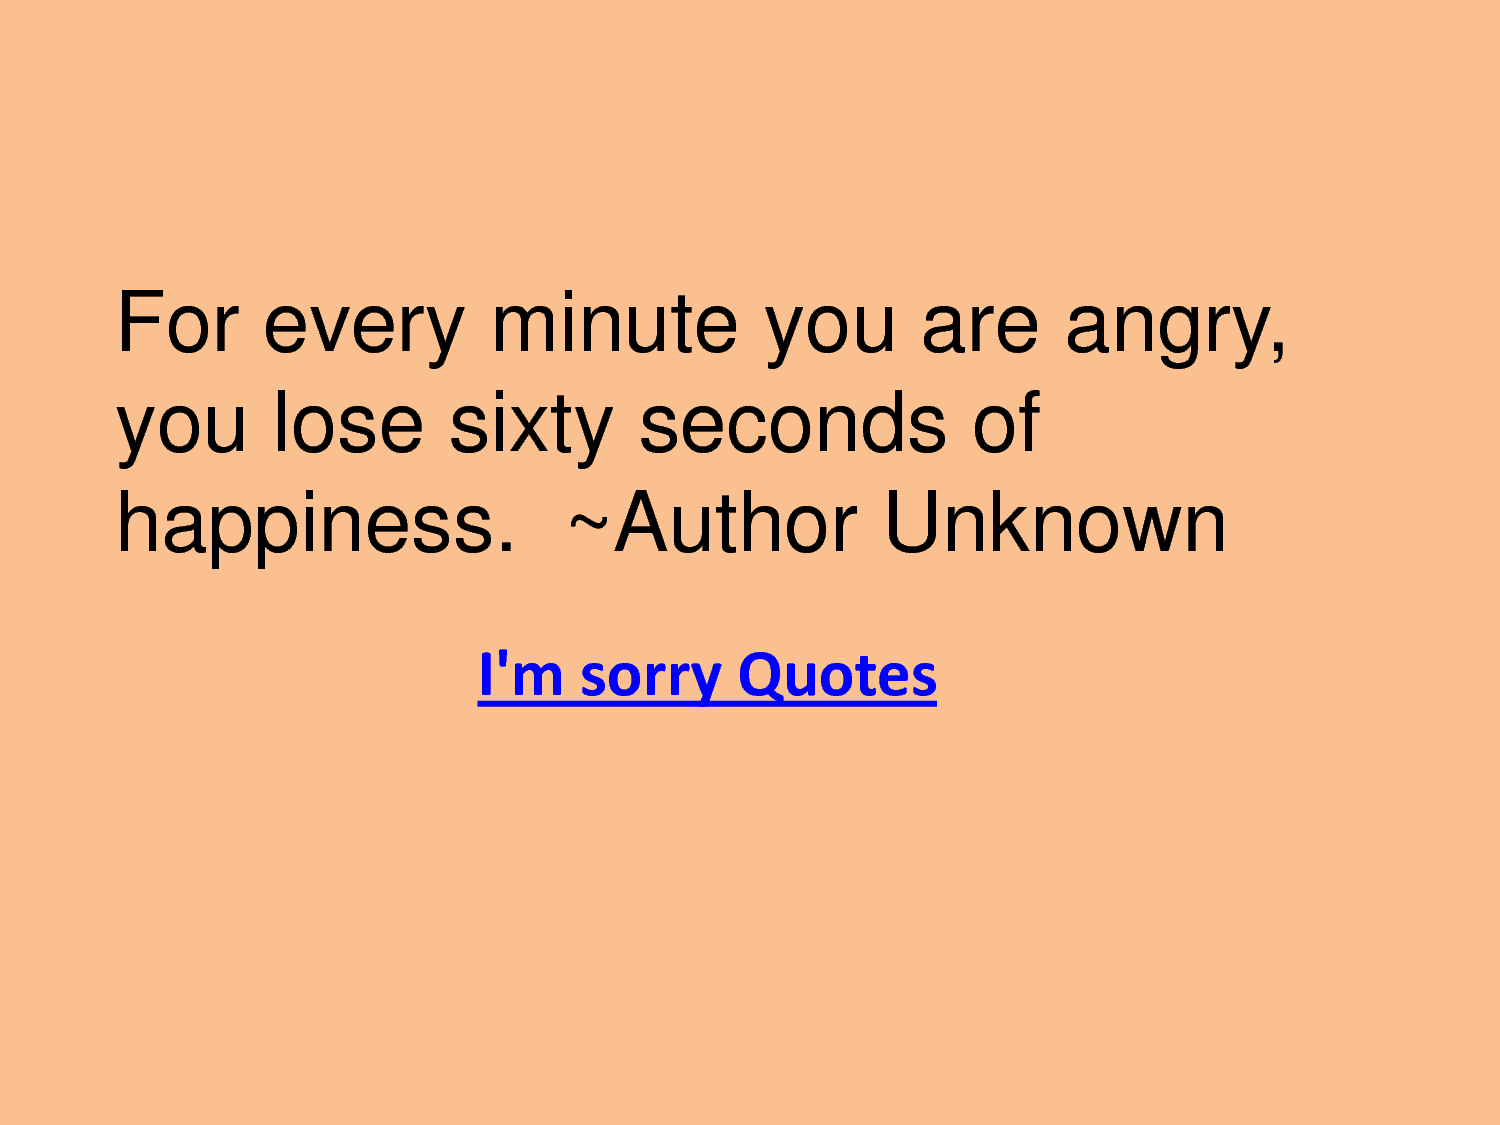 Sorry Quotes For Angry Friends : Quotes about happiness tumblr and love tagalog smiling